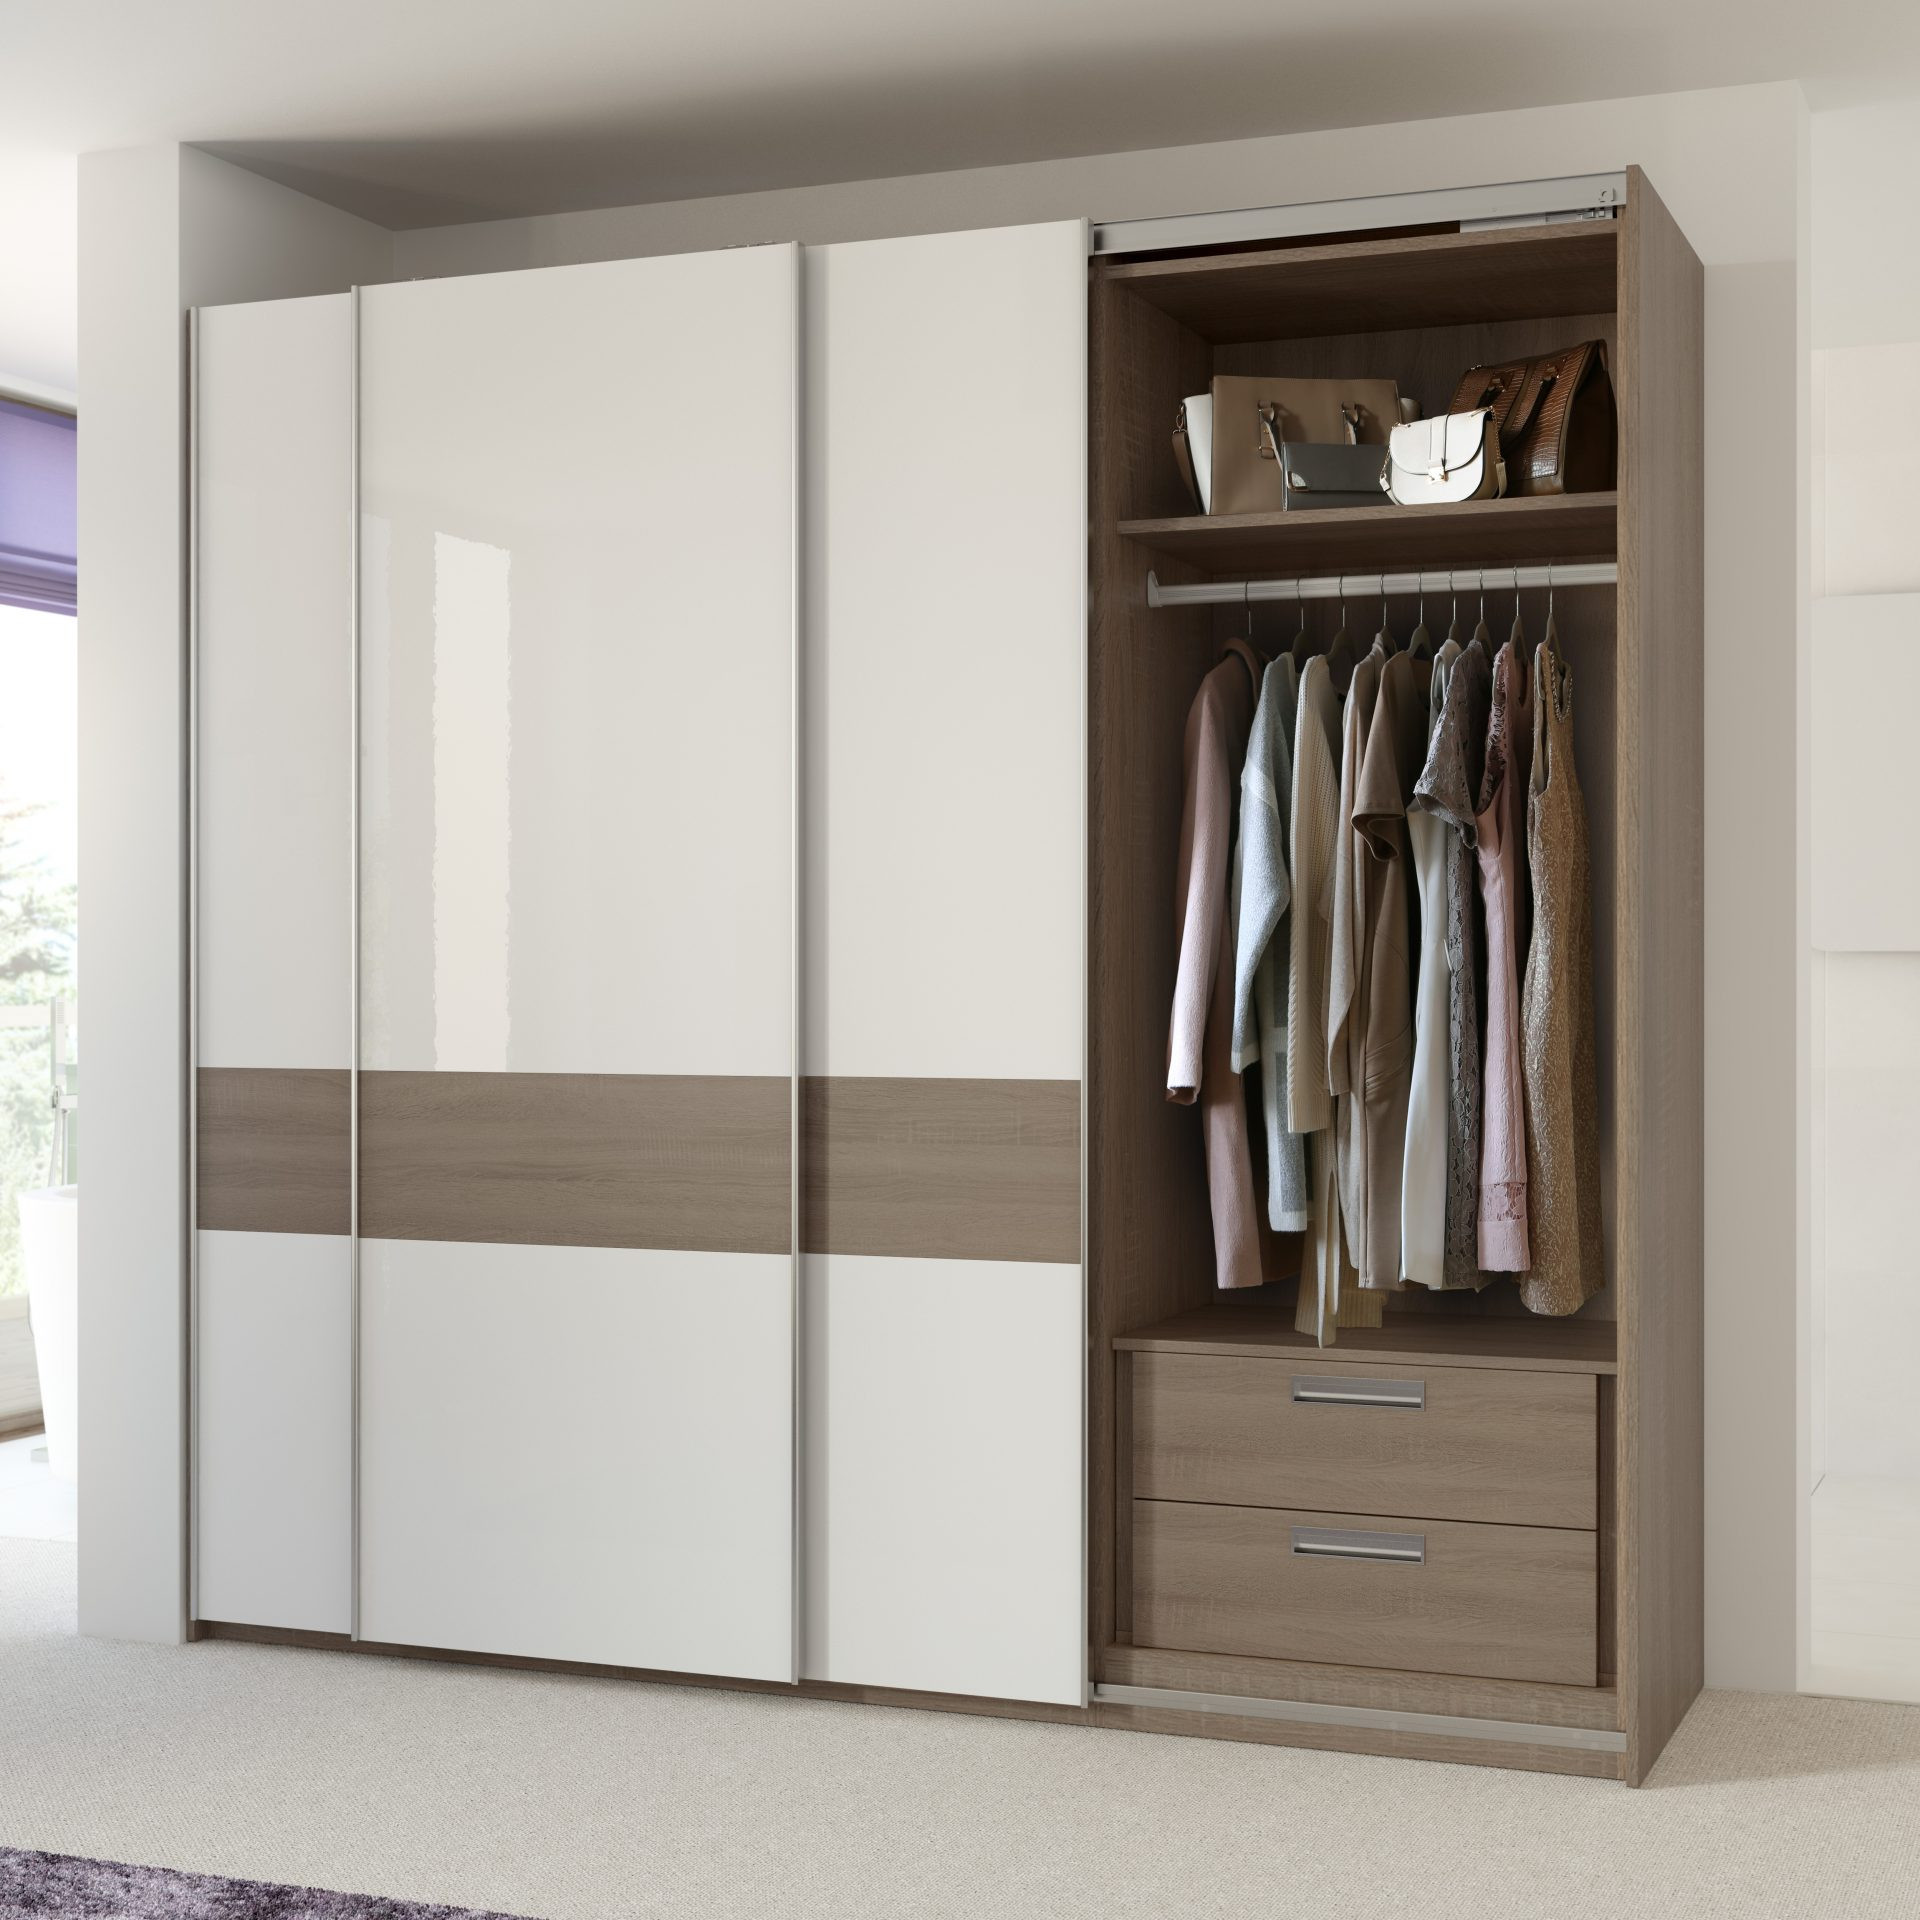 Storage Solution with single hanging and internal drawers